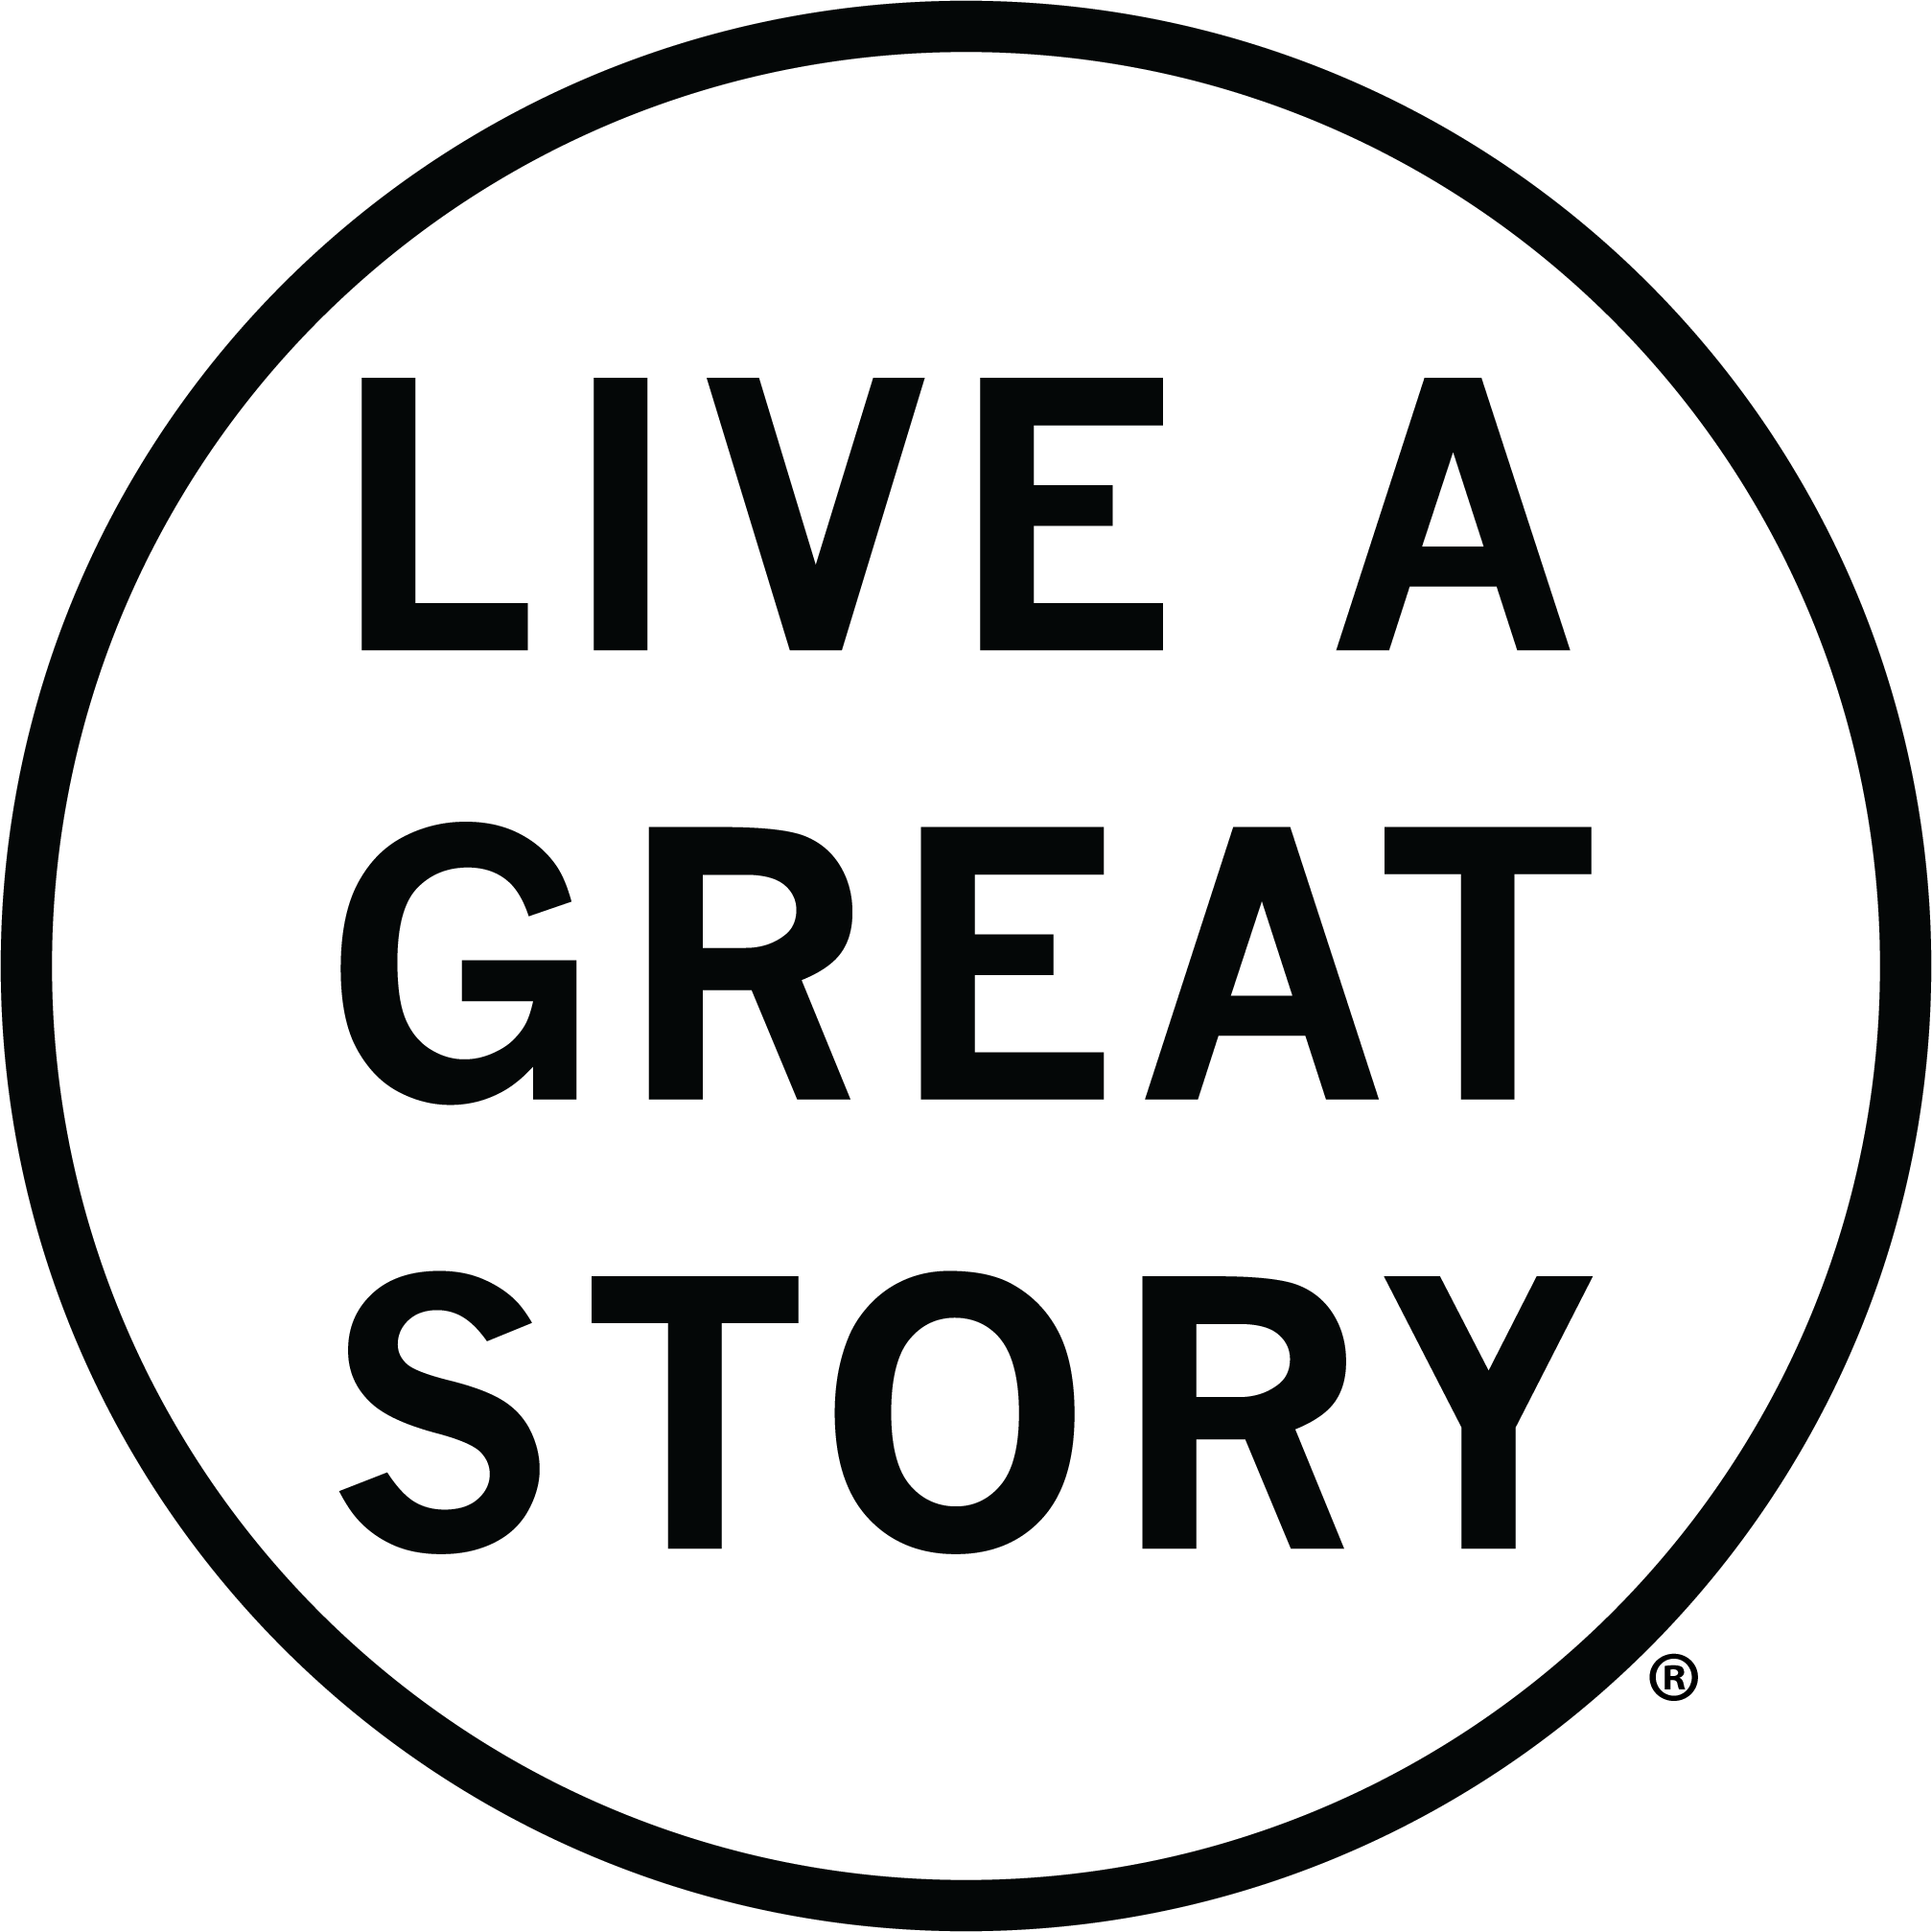 LIVE A GREAT STORY presents Great Stories show art